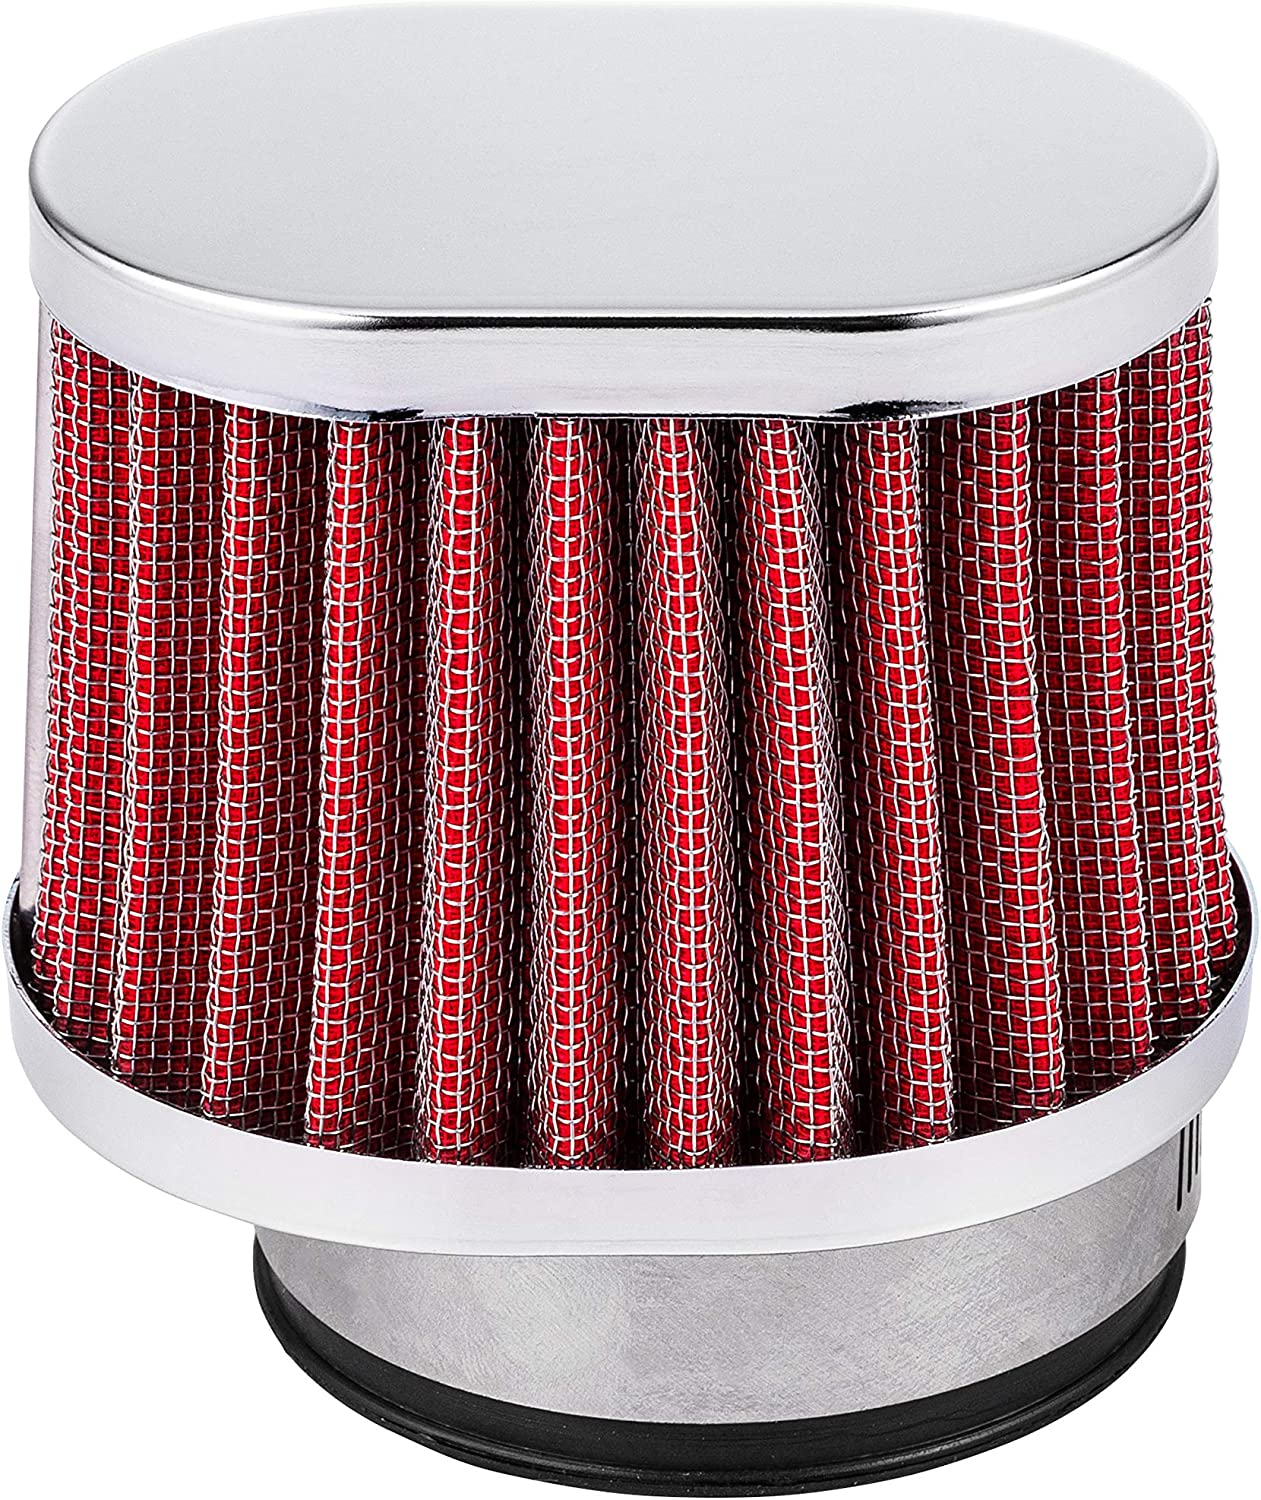 20.47Inch Motorcycle 52mm POD Oval Air Filter Filters Sold as A set of Four Washable and Reusable Breathers Cleaners Fit Yamaha 1984-2003 XJ600 etc Offered by ALPHA MOTO